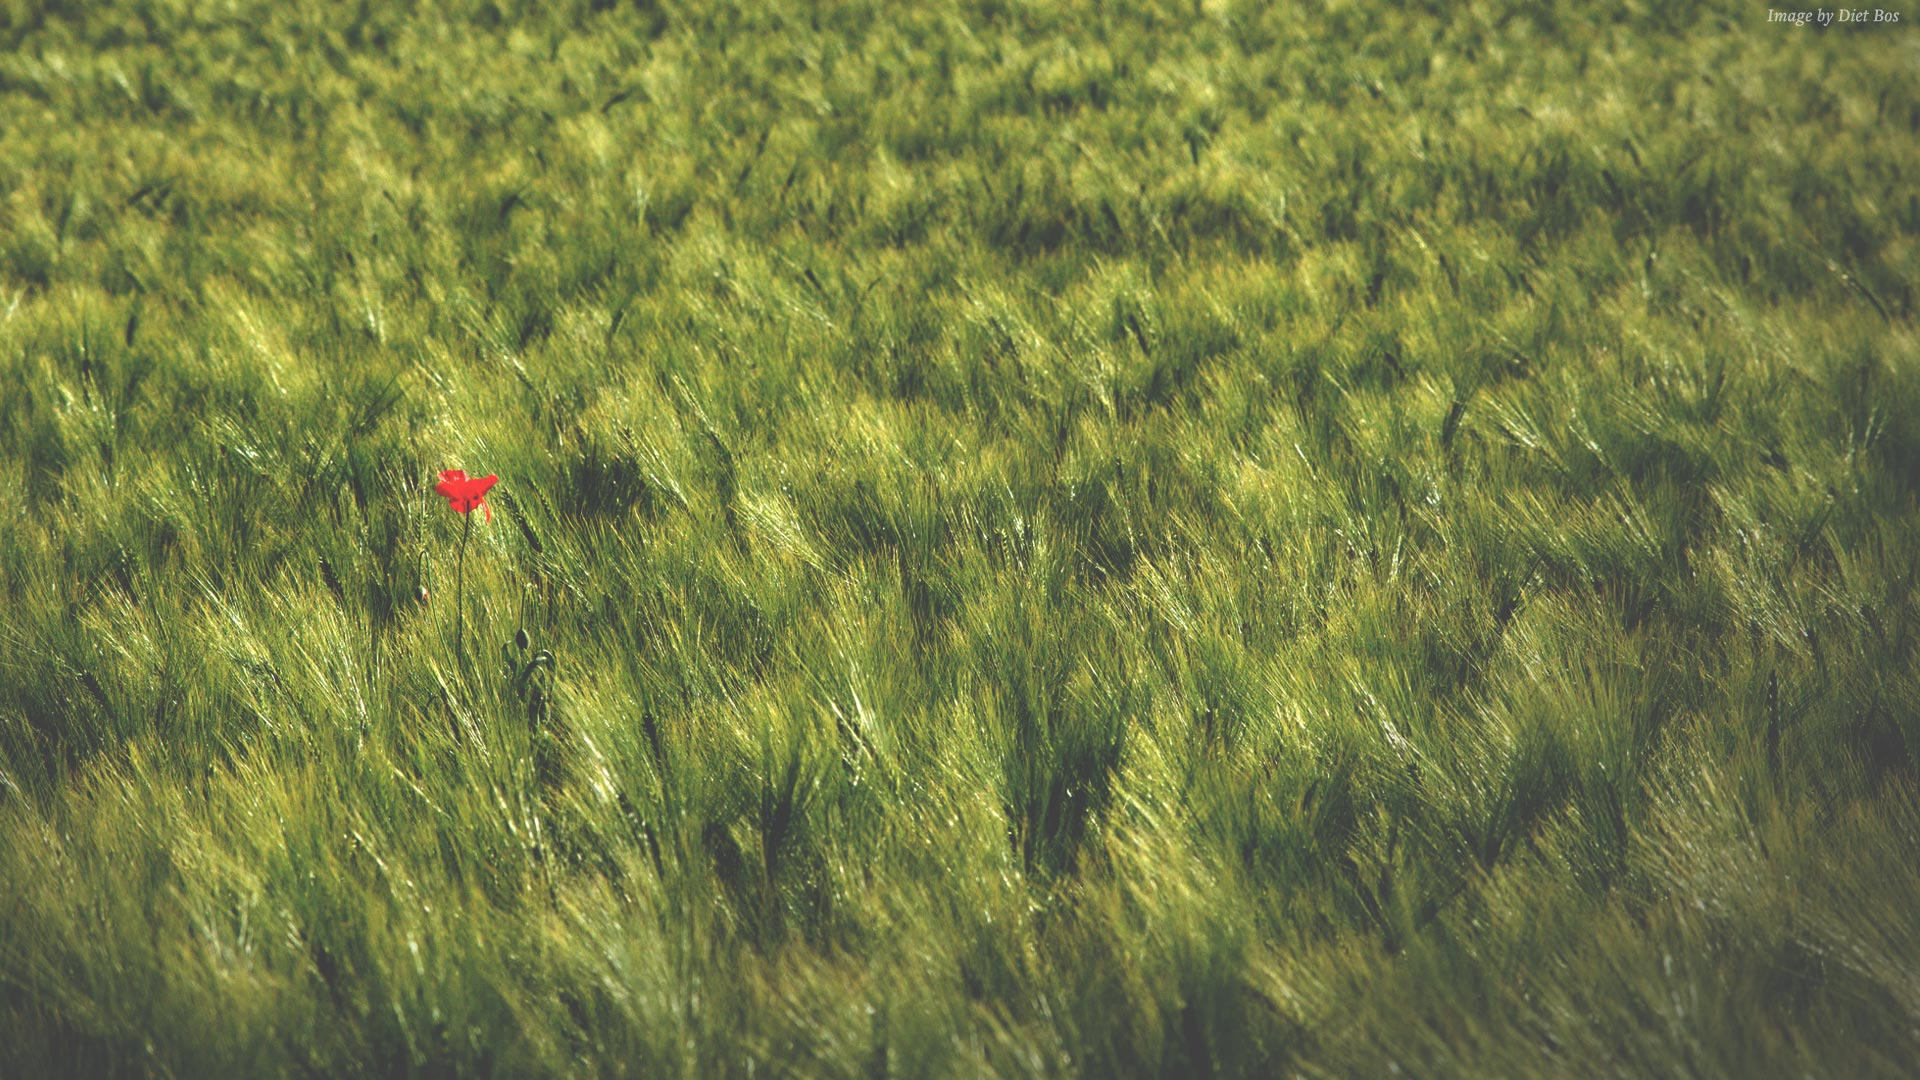 Red flower in a field